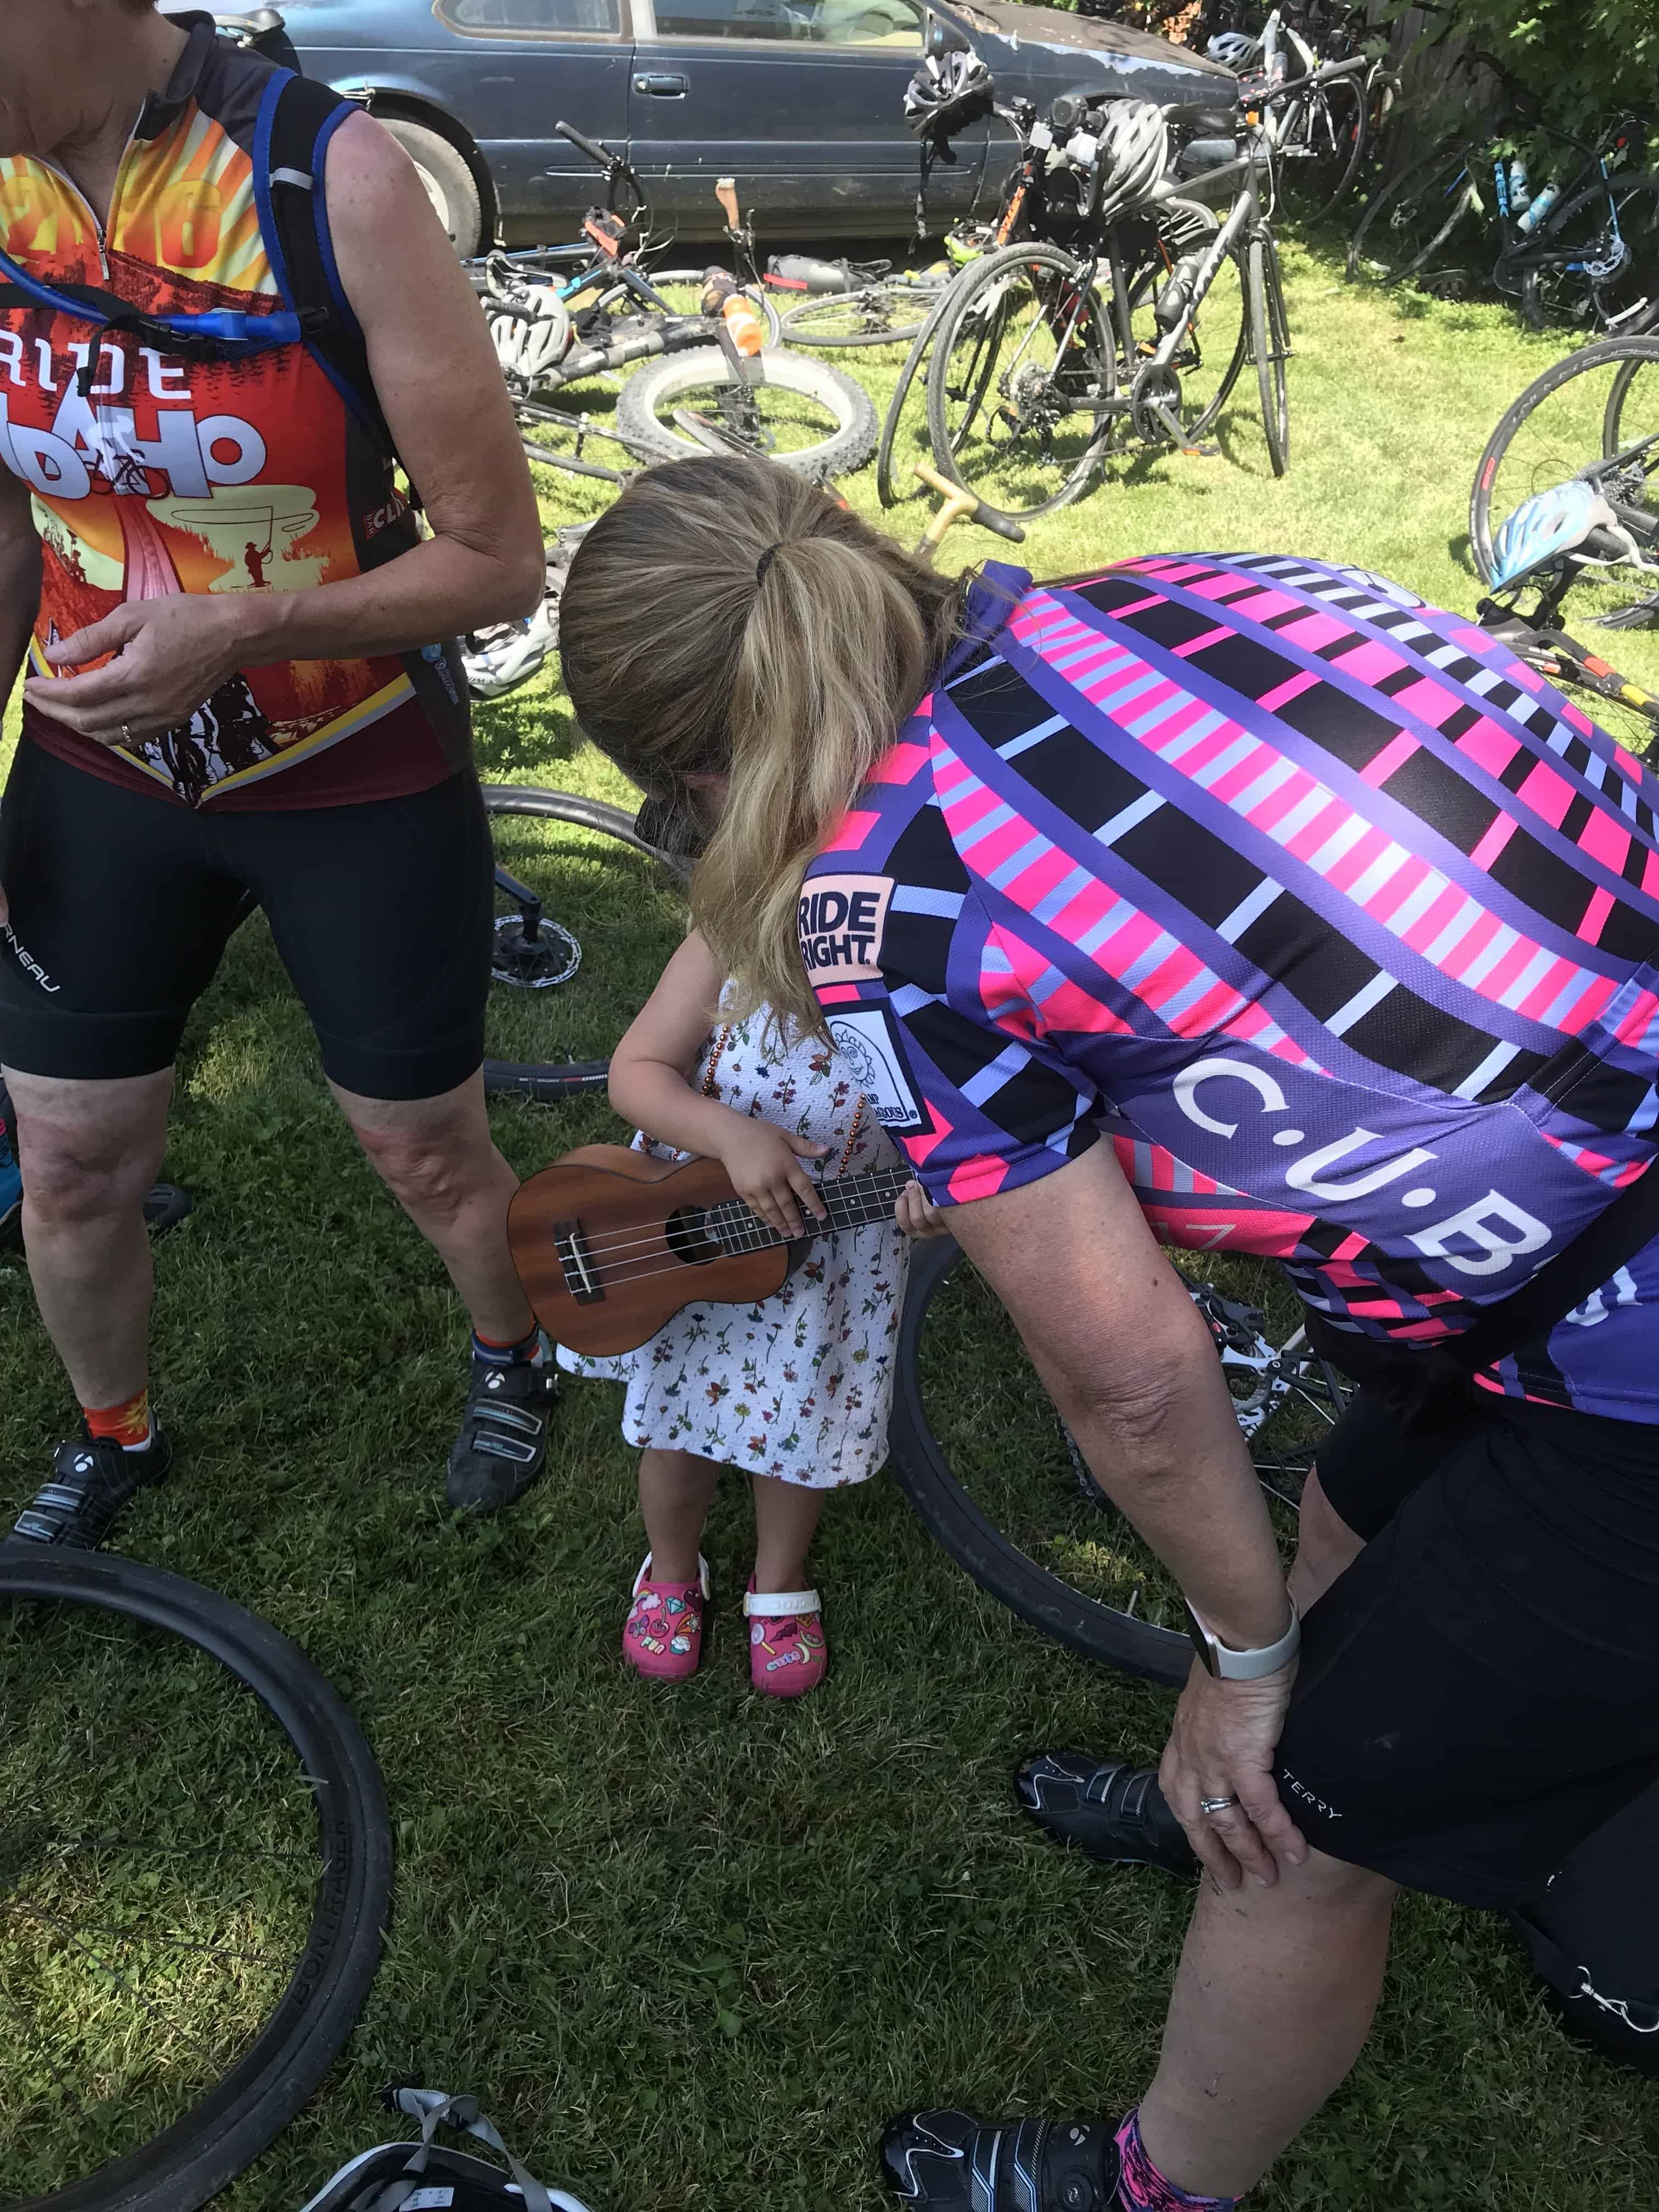 Jenny shares her ukulele with a young music fan on RAGBRAI 2019